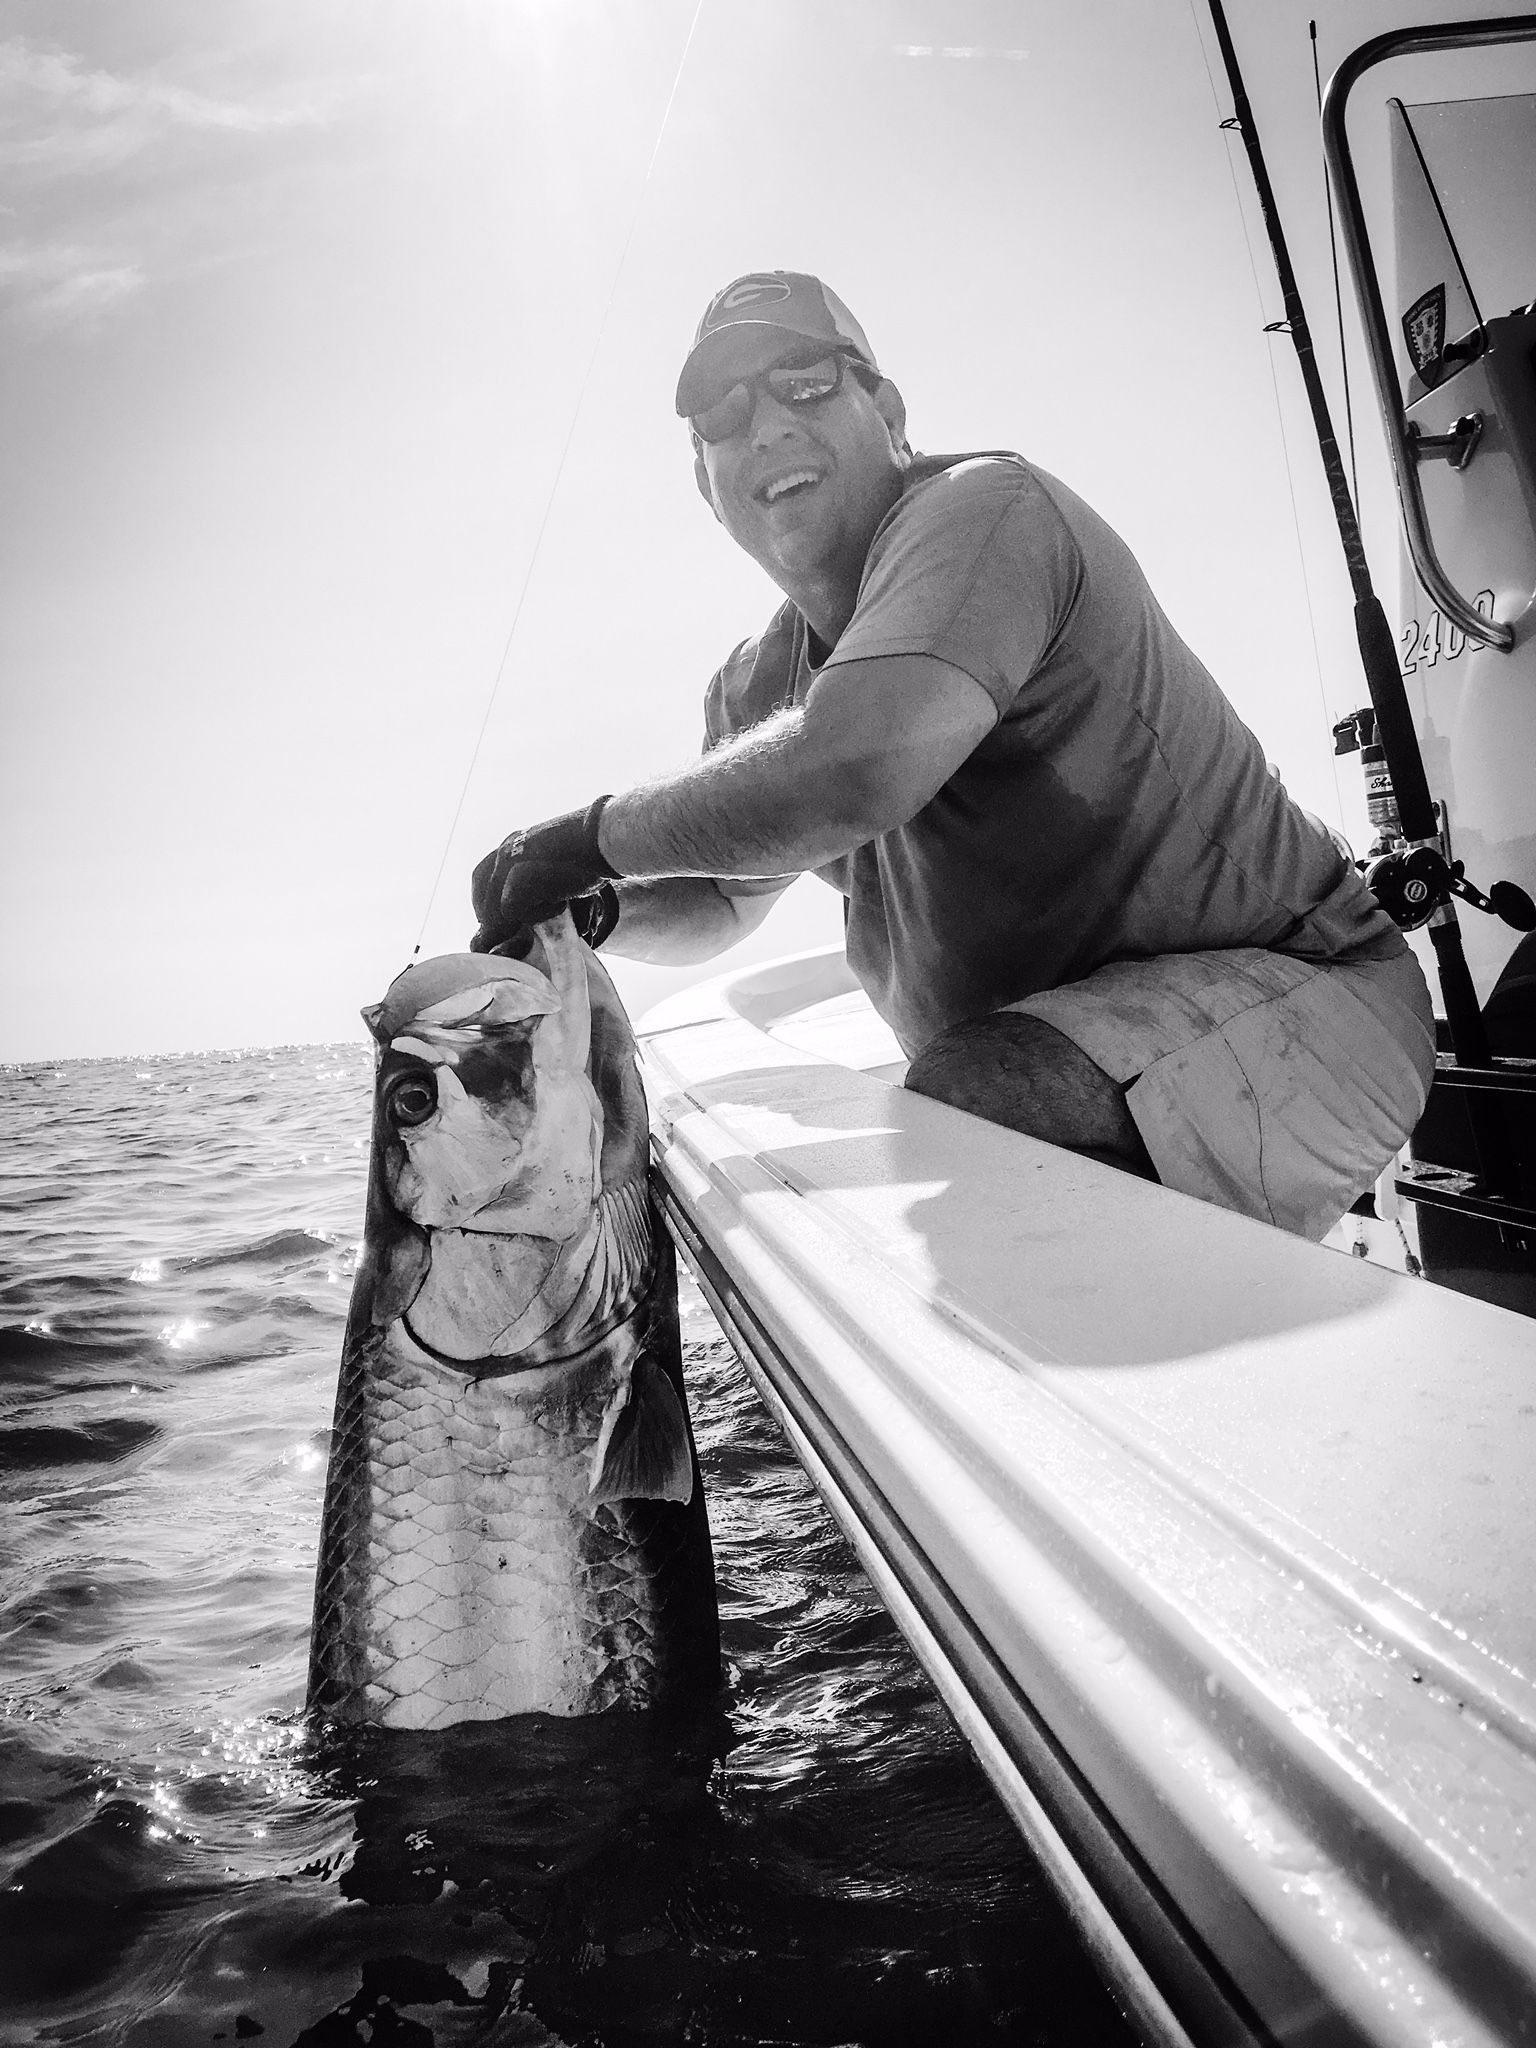 Fisherman with large Tarpon caught off side of boat